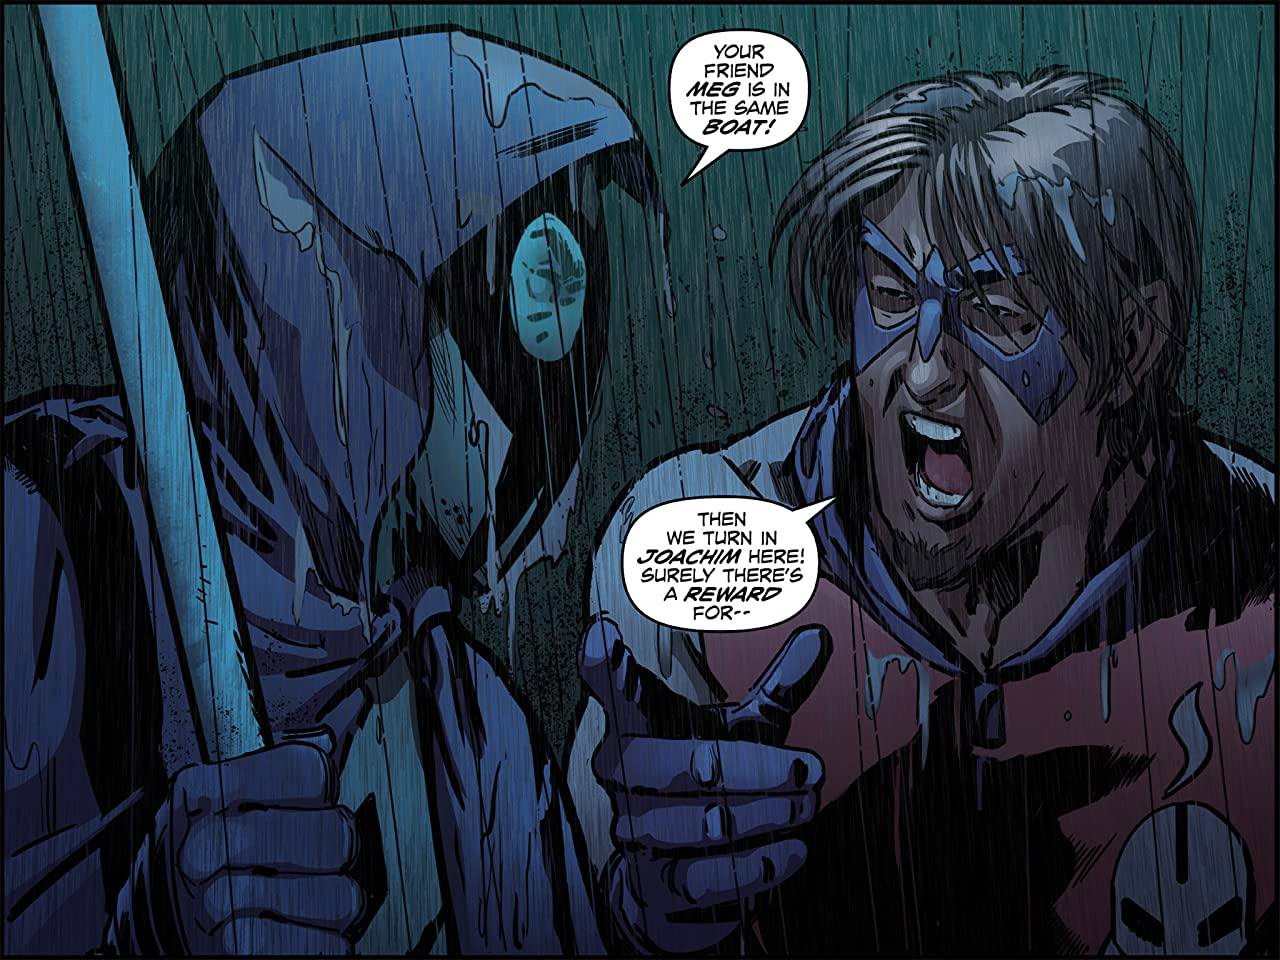 Insufferable: On the Road #6